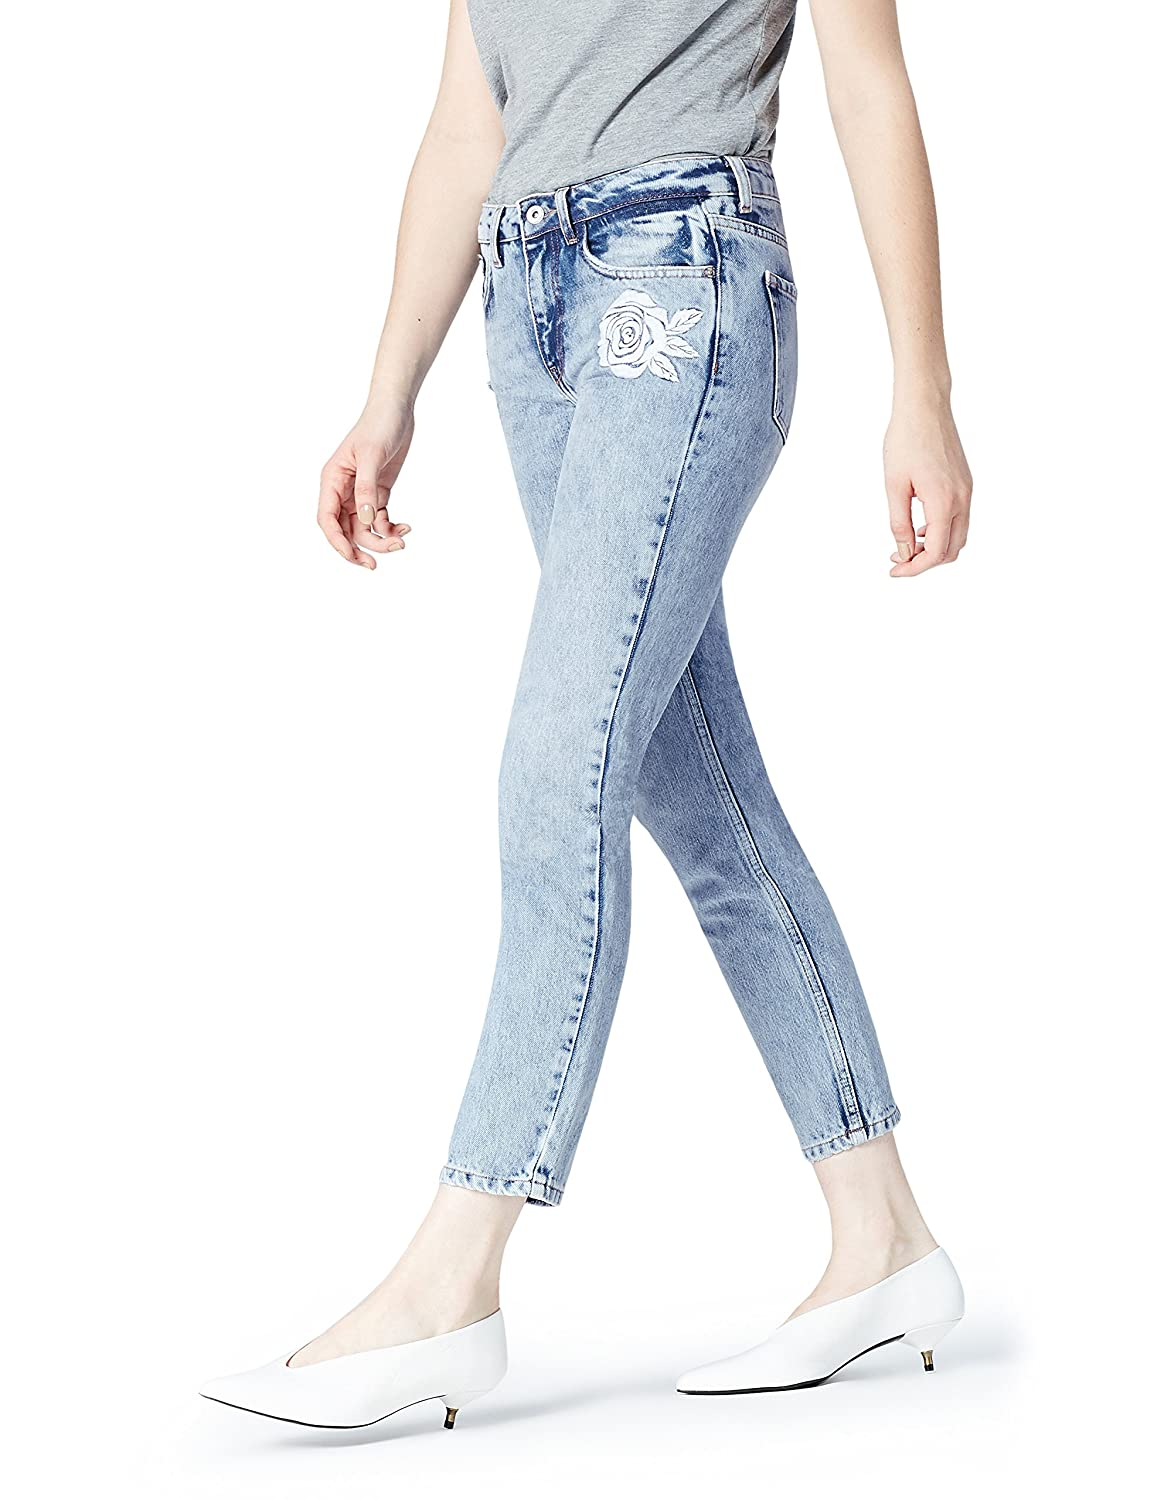 TALLA S. Marca Amazon - find. Vaqueros Rectos con Bordados Mujer